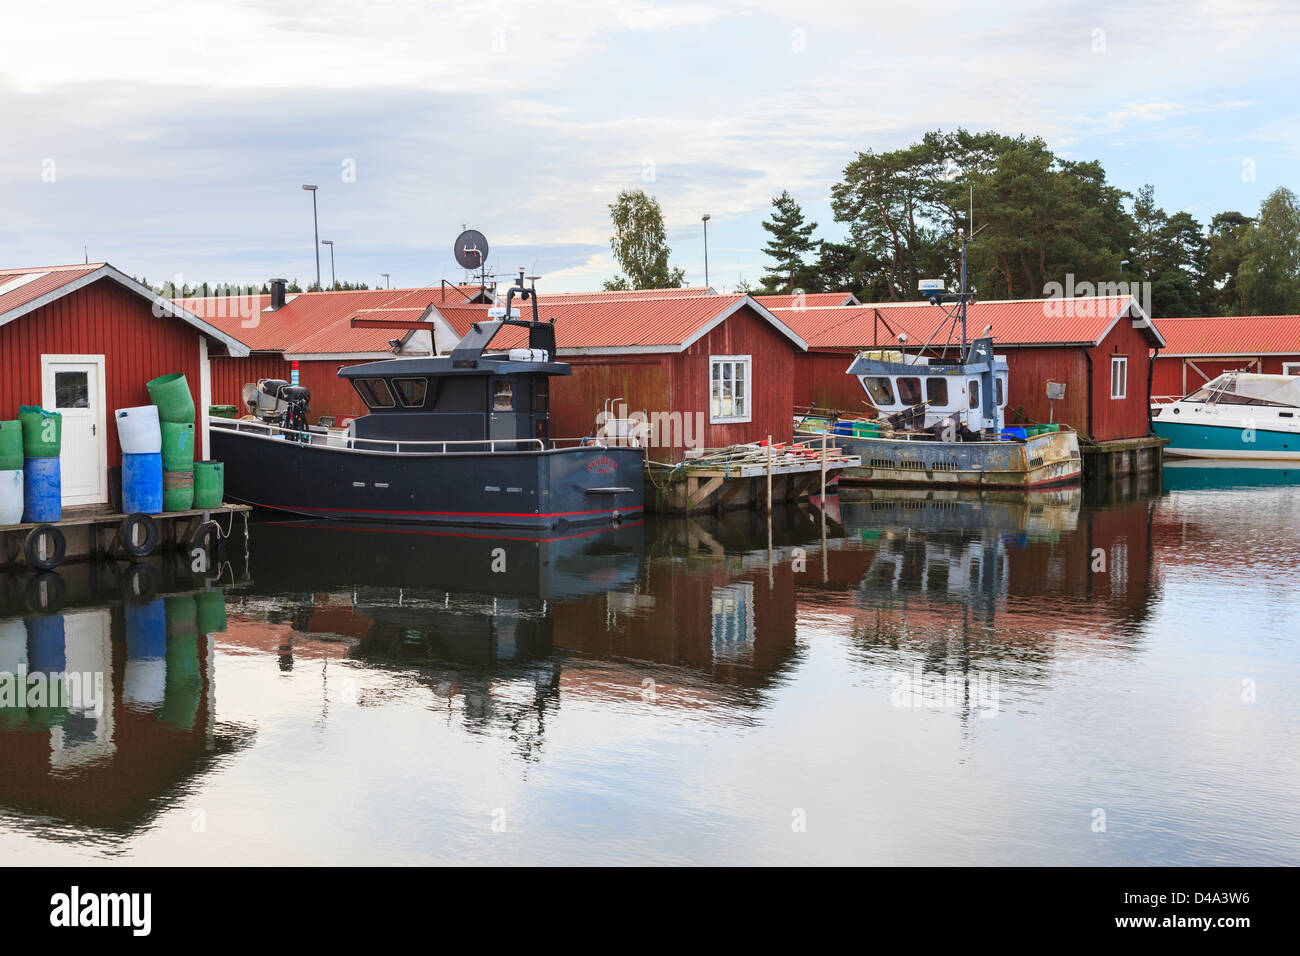 Fishing boat at harbour - Stock Image